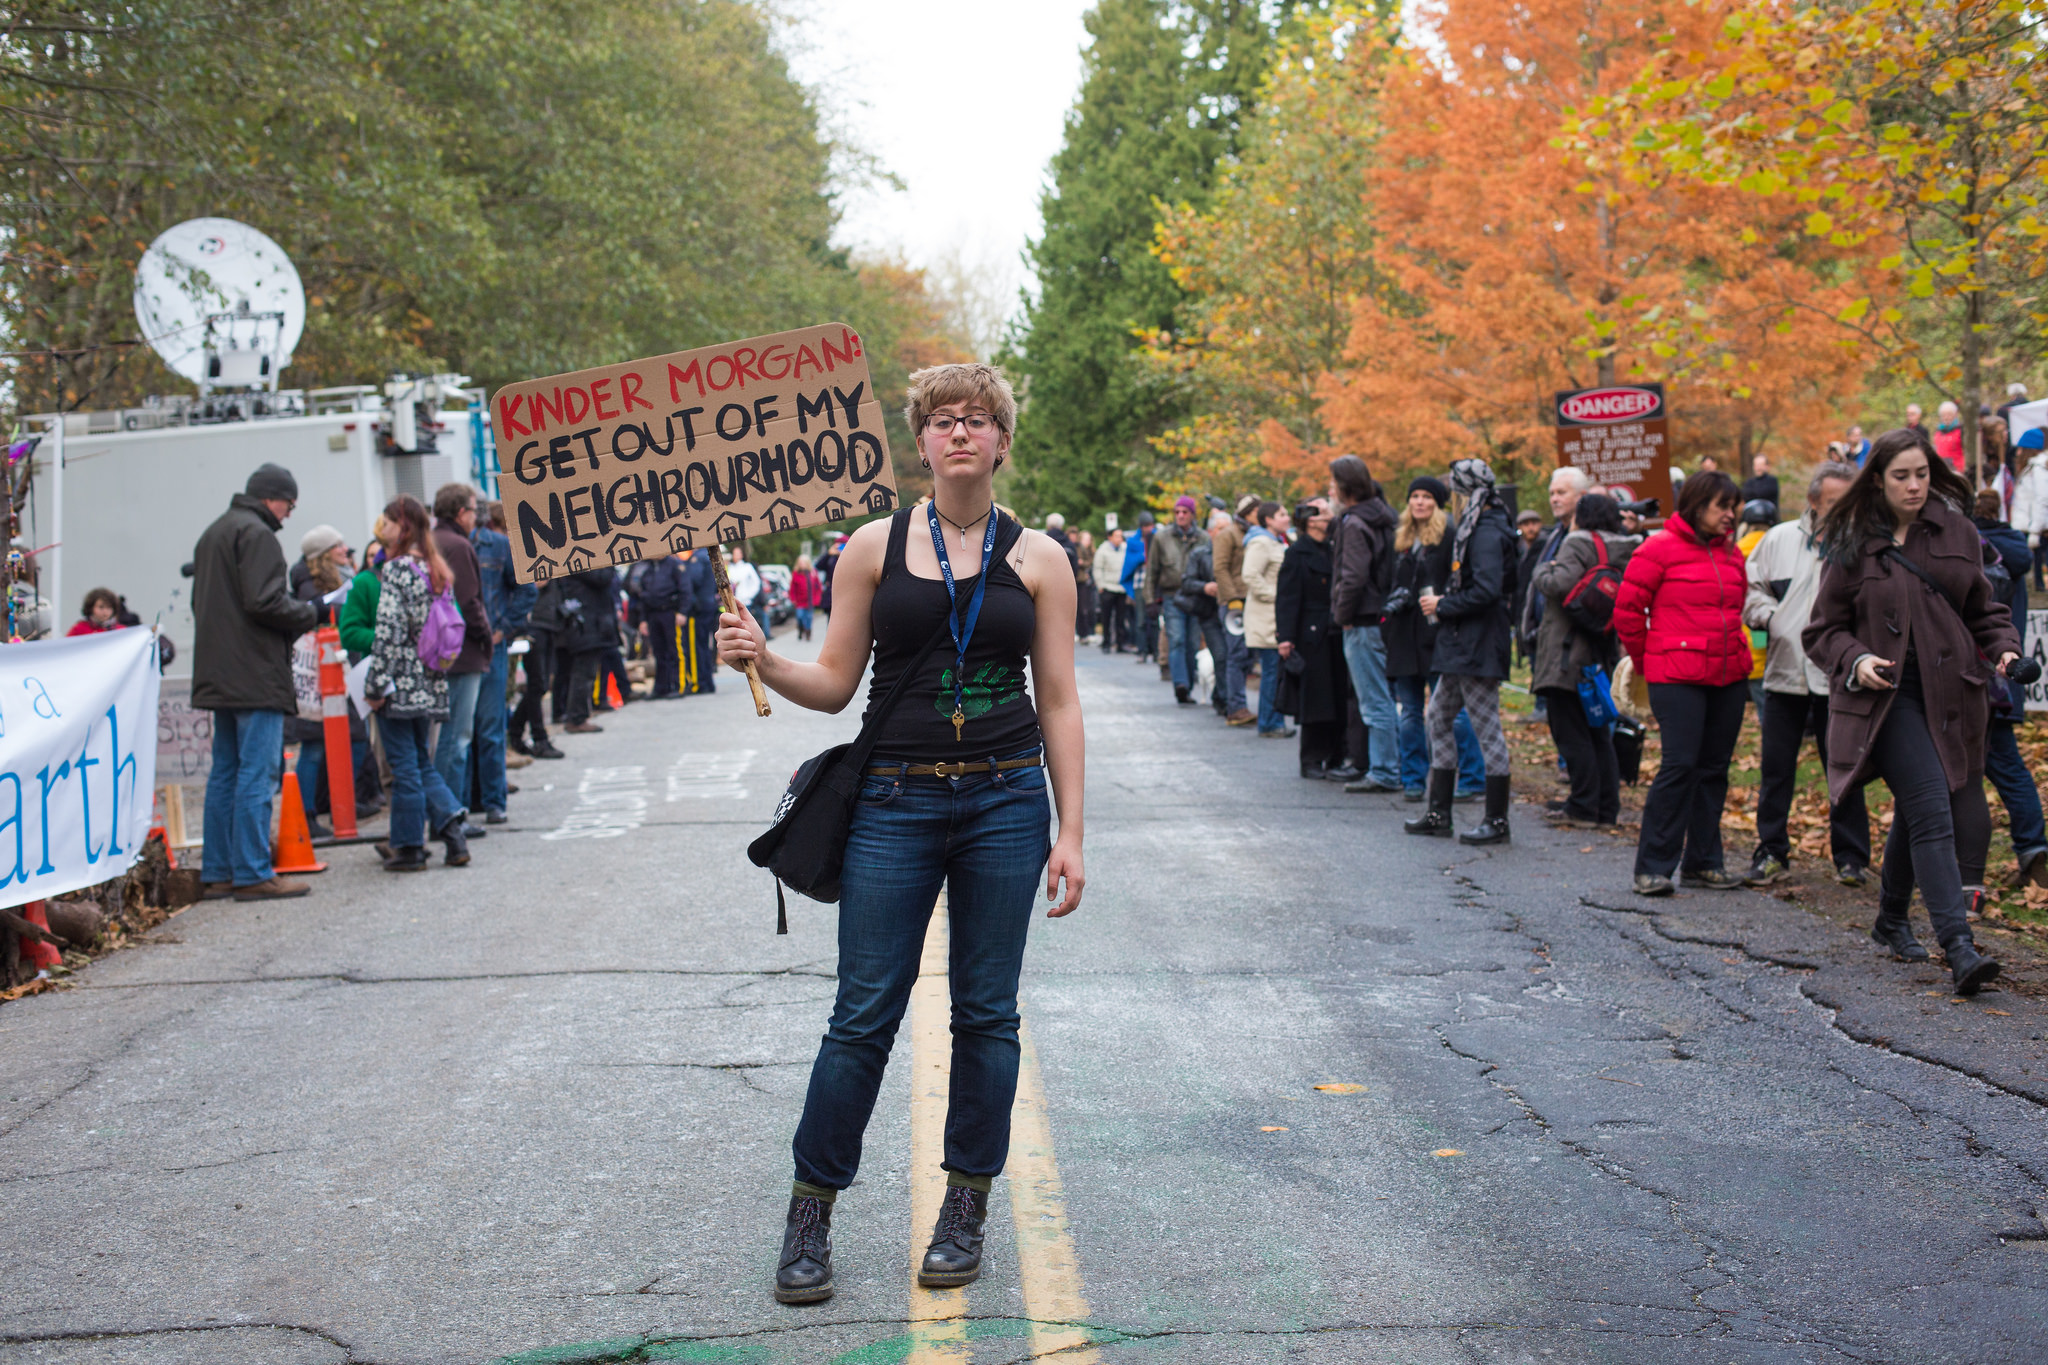 Kinder Morgan protester